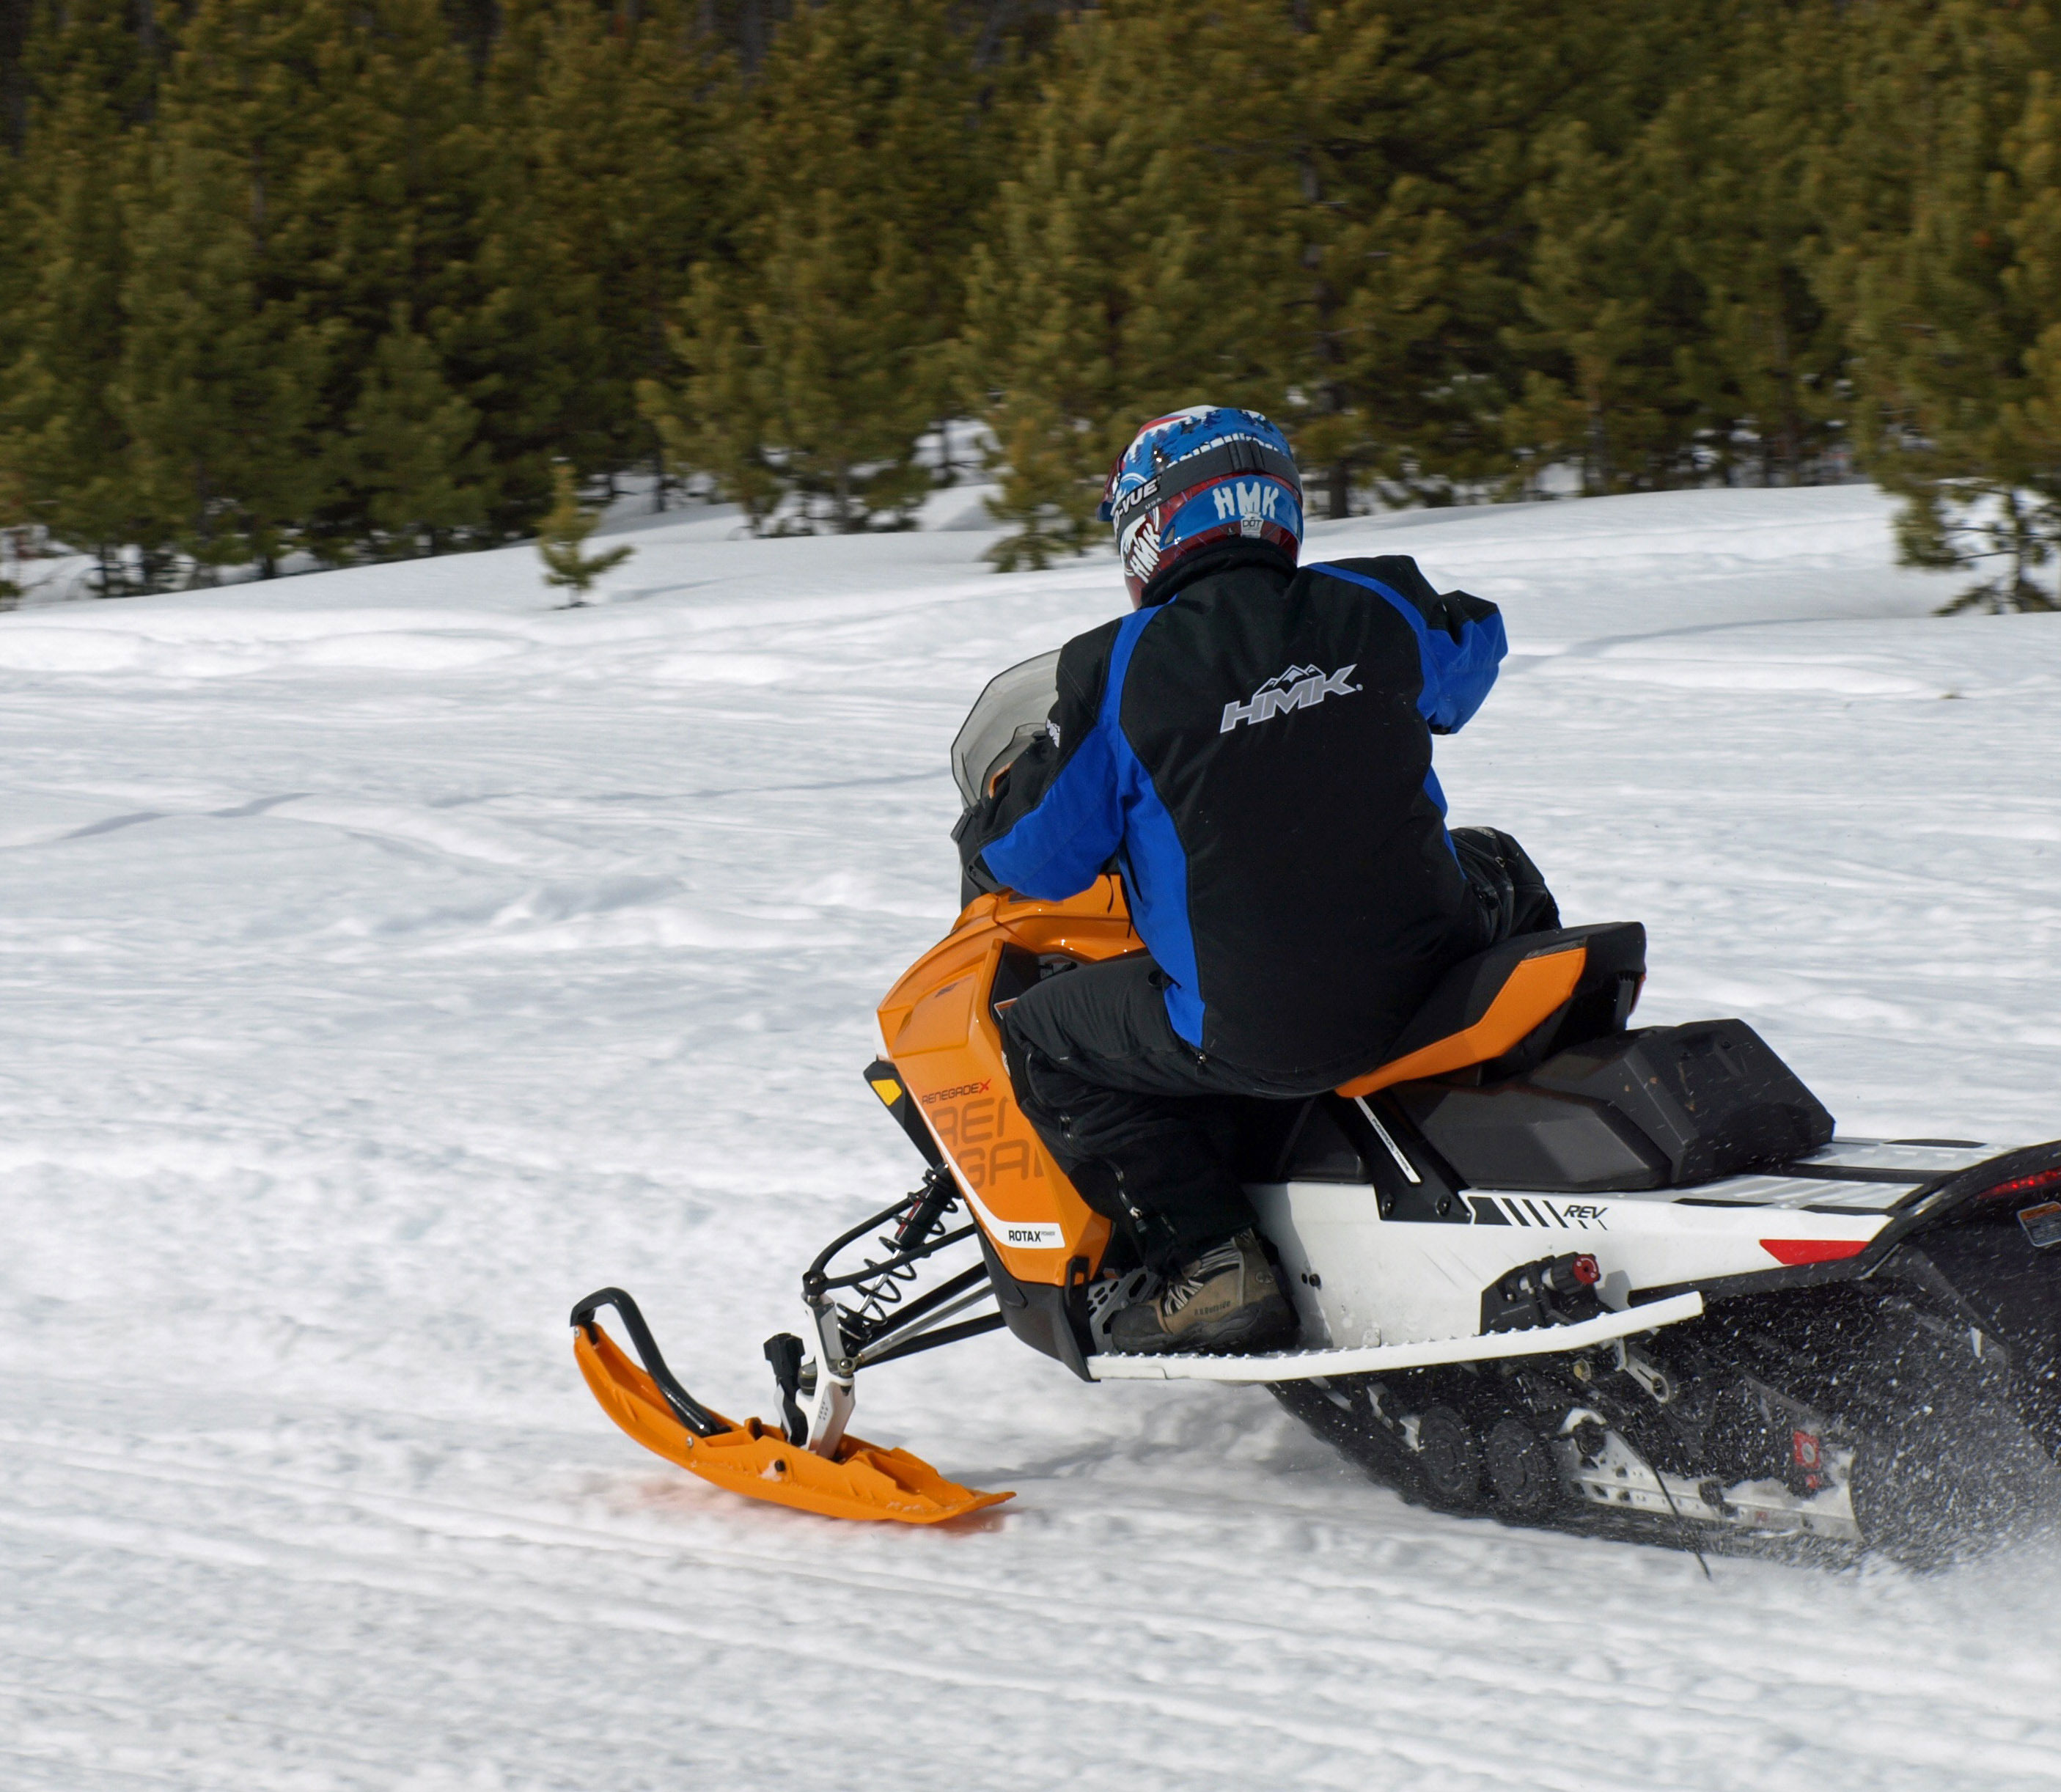 ski doo neu as - photo #30